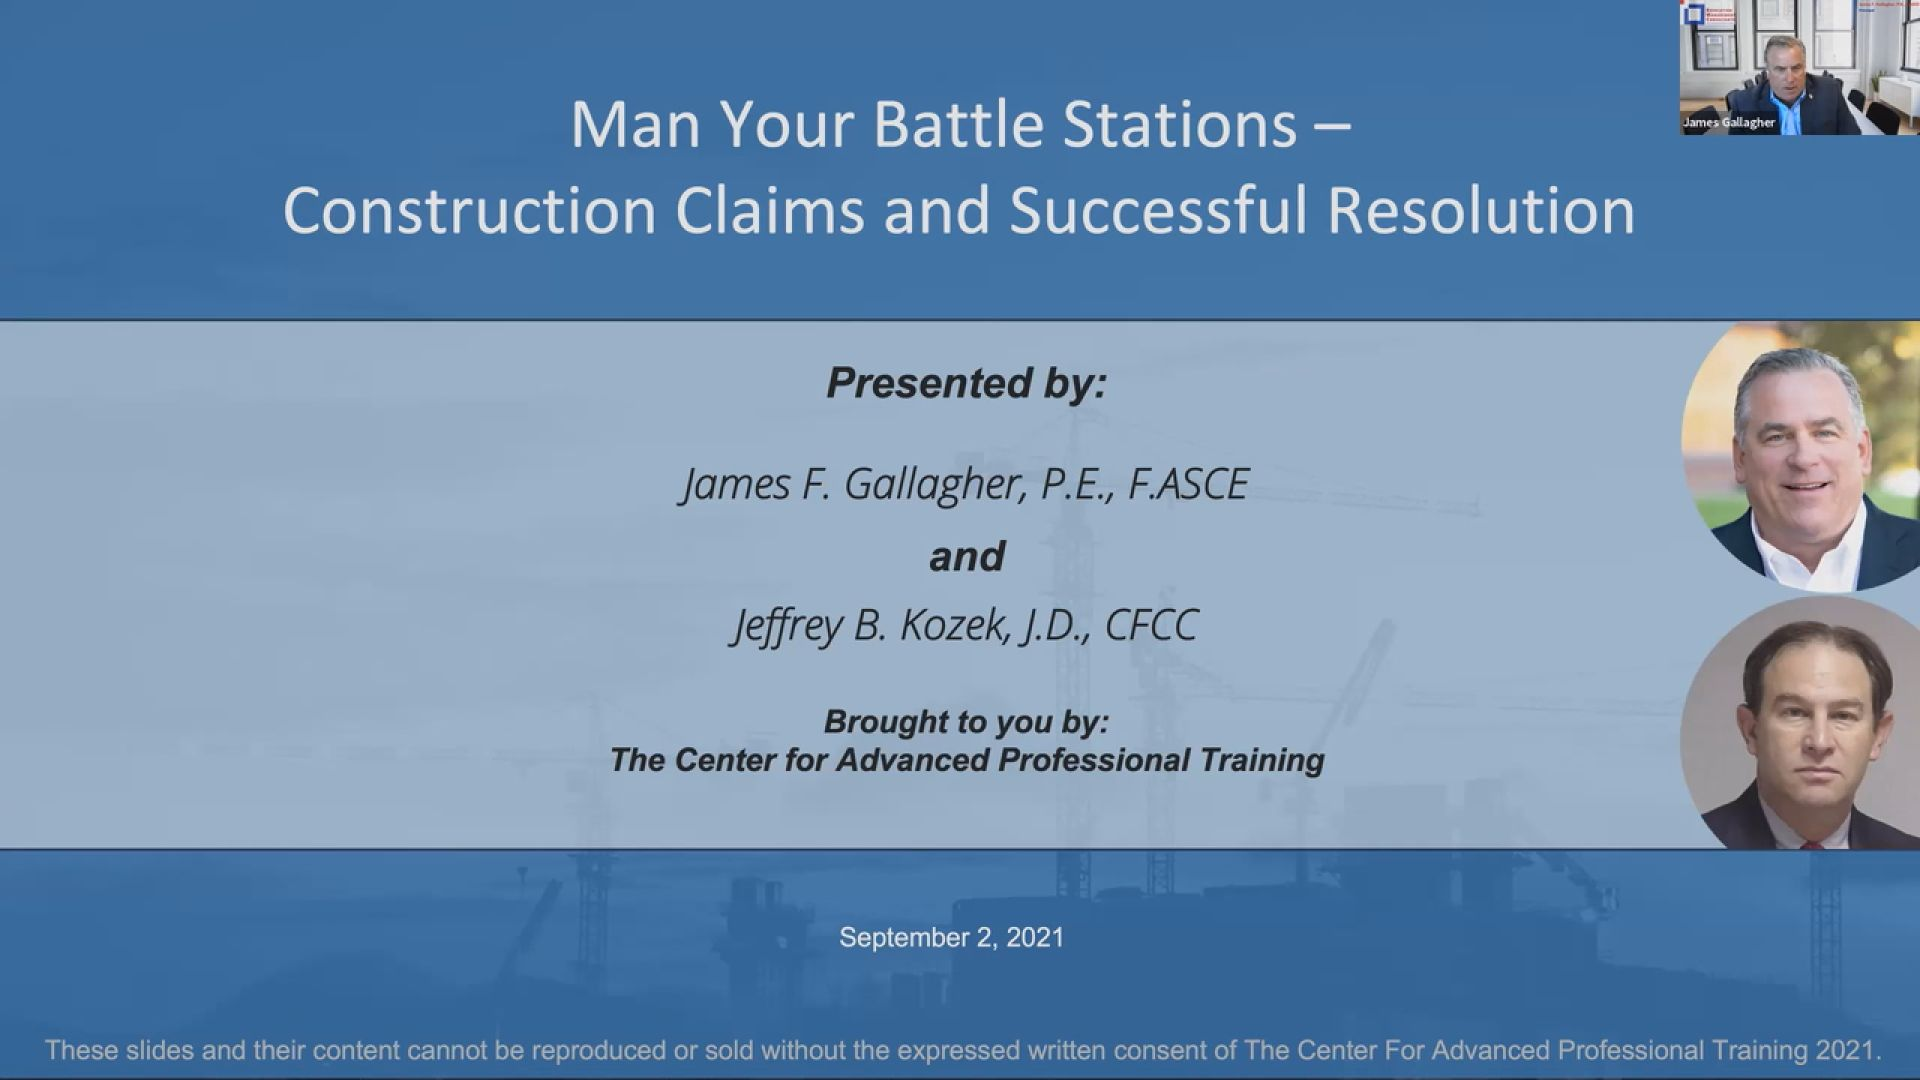 Man Your Battle Stations: Construction Claims & Successful Resolution Thumbnail